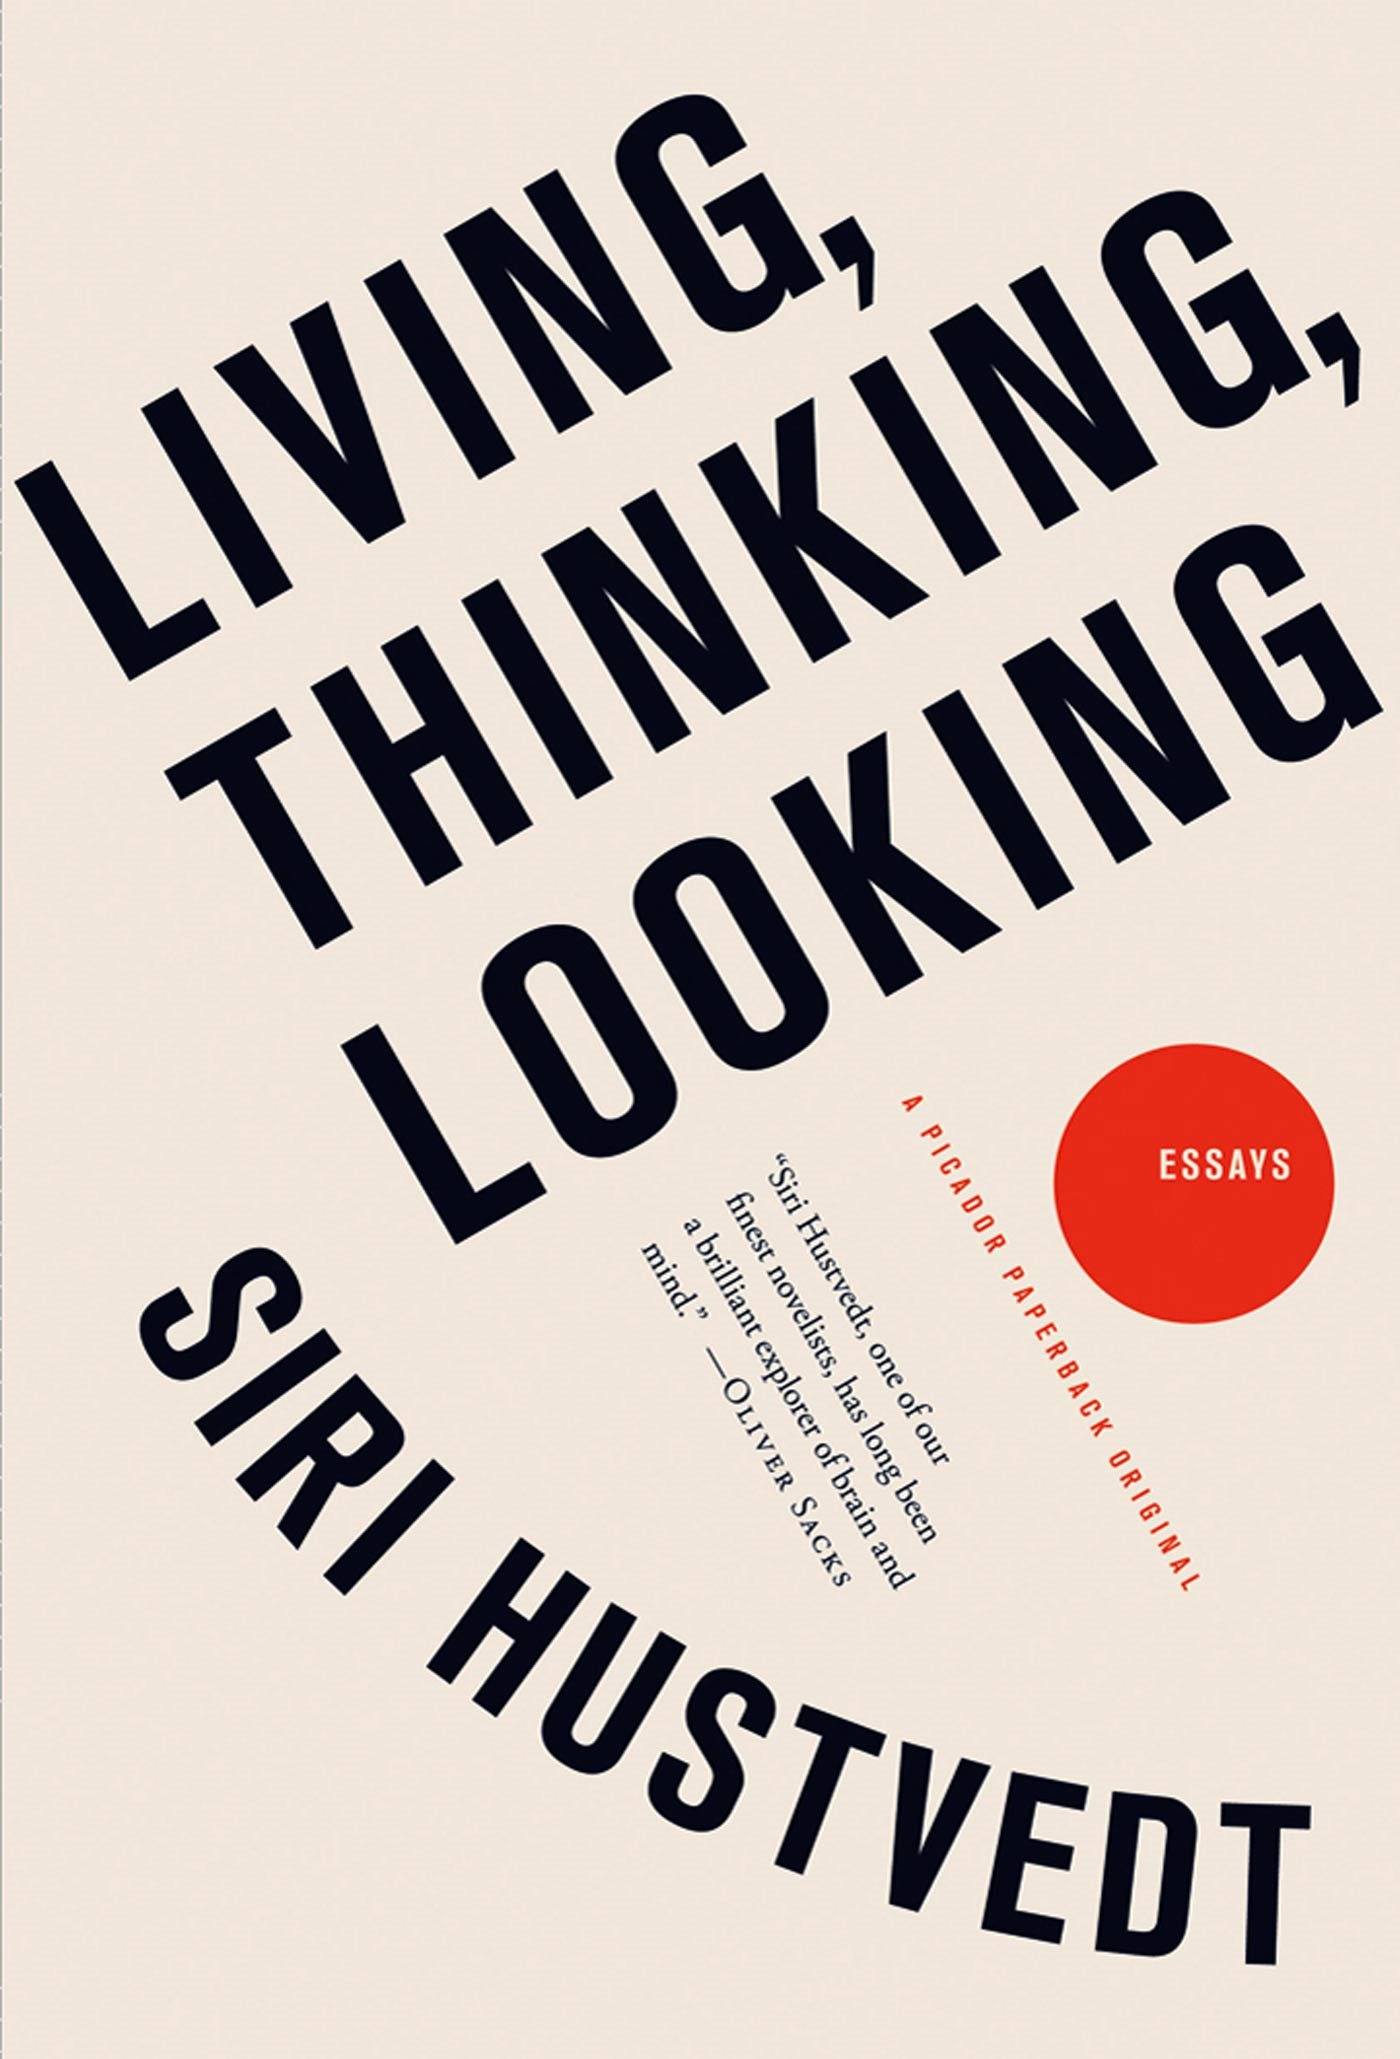 Living, Thinking, Looking By: Siri Hustvedt